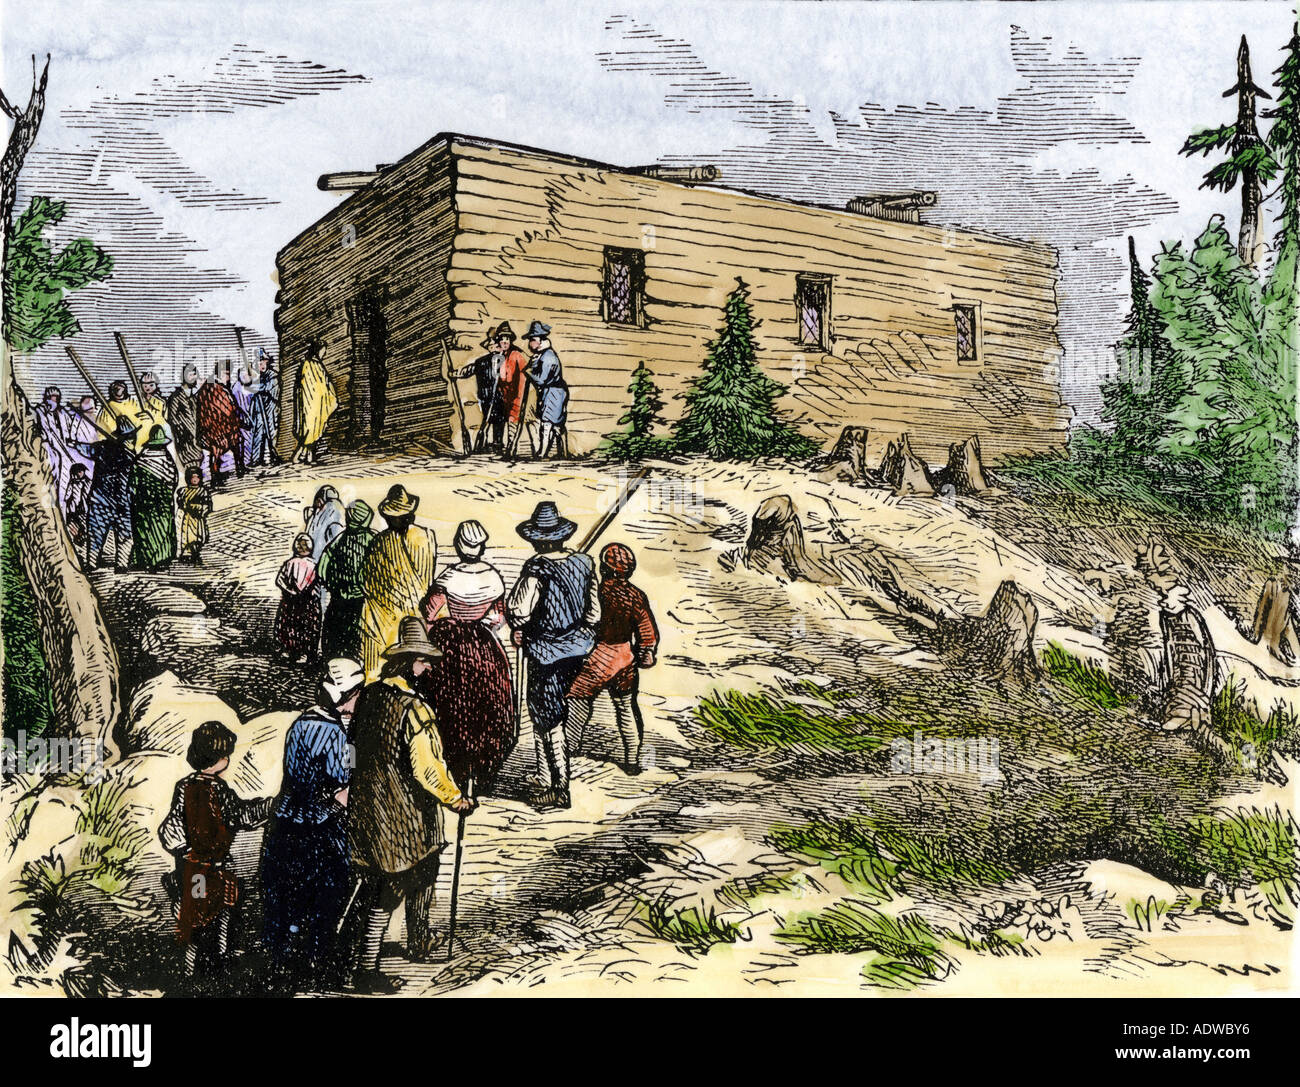 Pilgrims going to worship at the first church in New England Plymouth Colony 1620s. Hand-colored woodcut - Stock Image